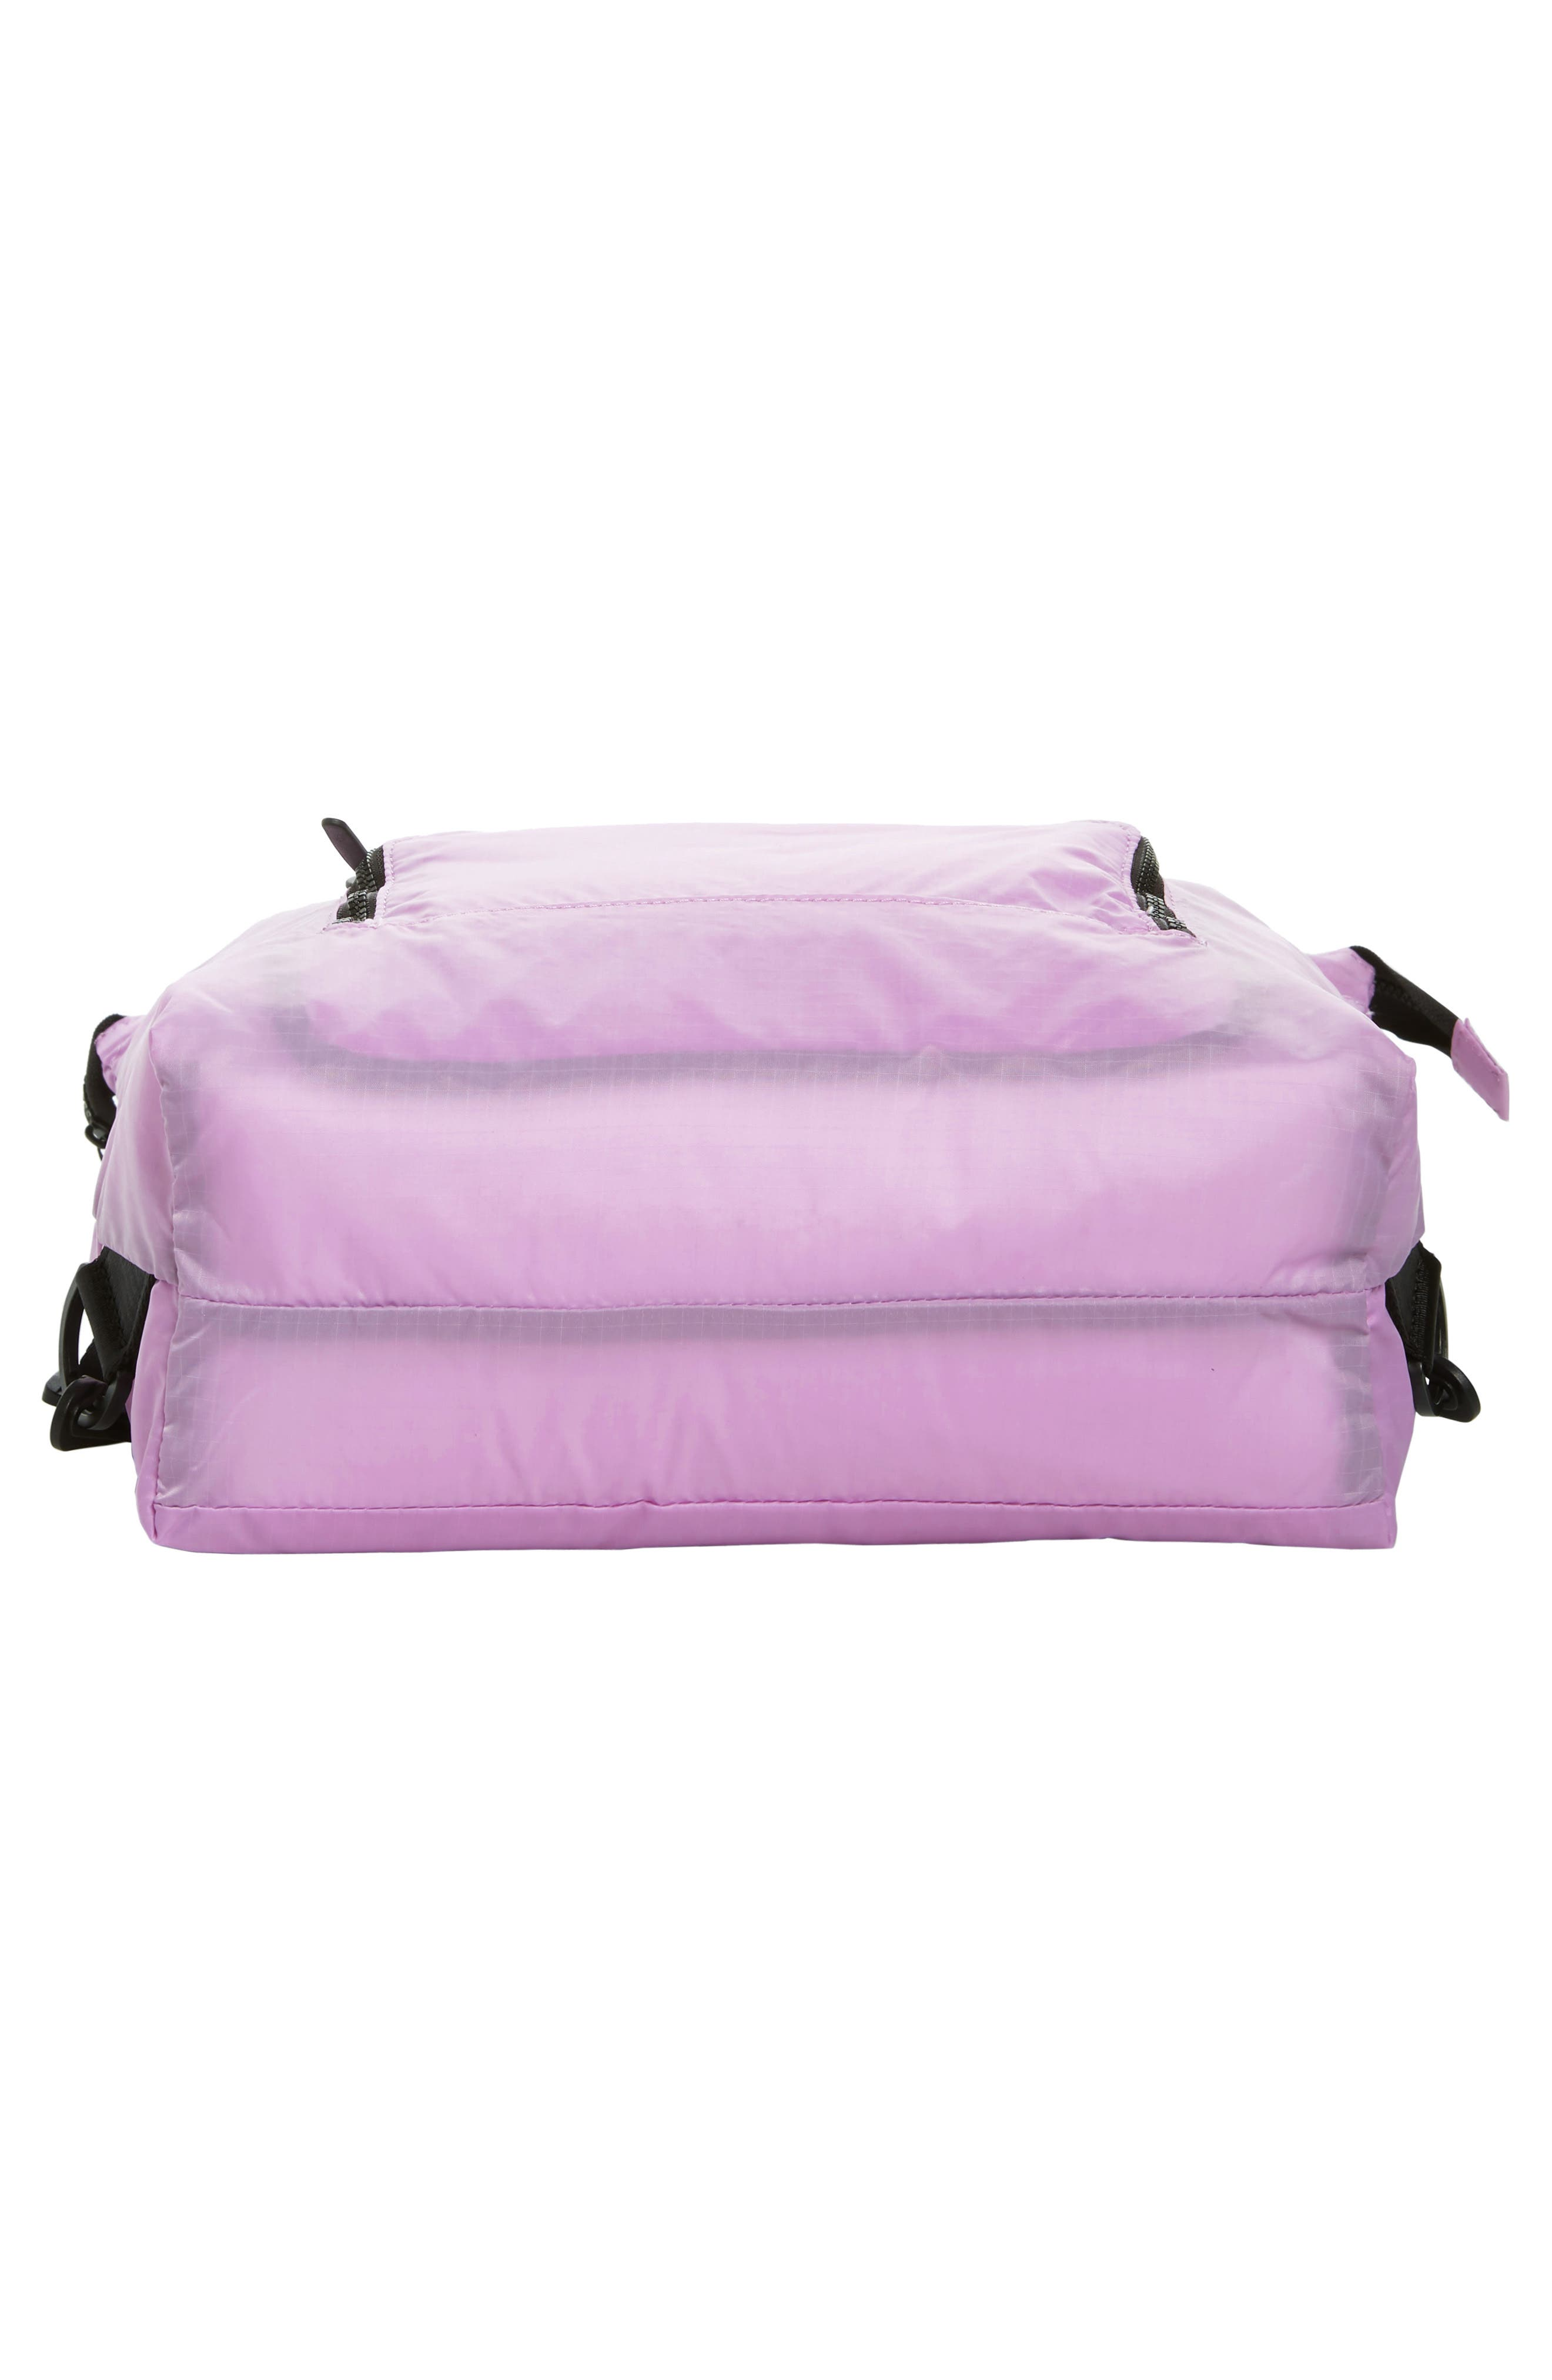 Packable Convertible Backpack,                             Alternate thumbnail 7, color,                             LAVENDER SWEET